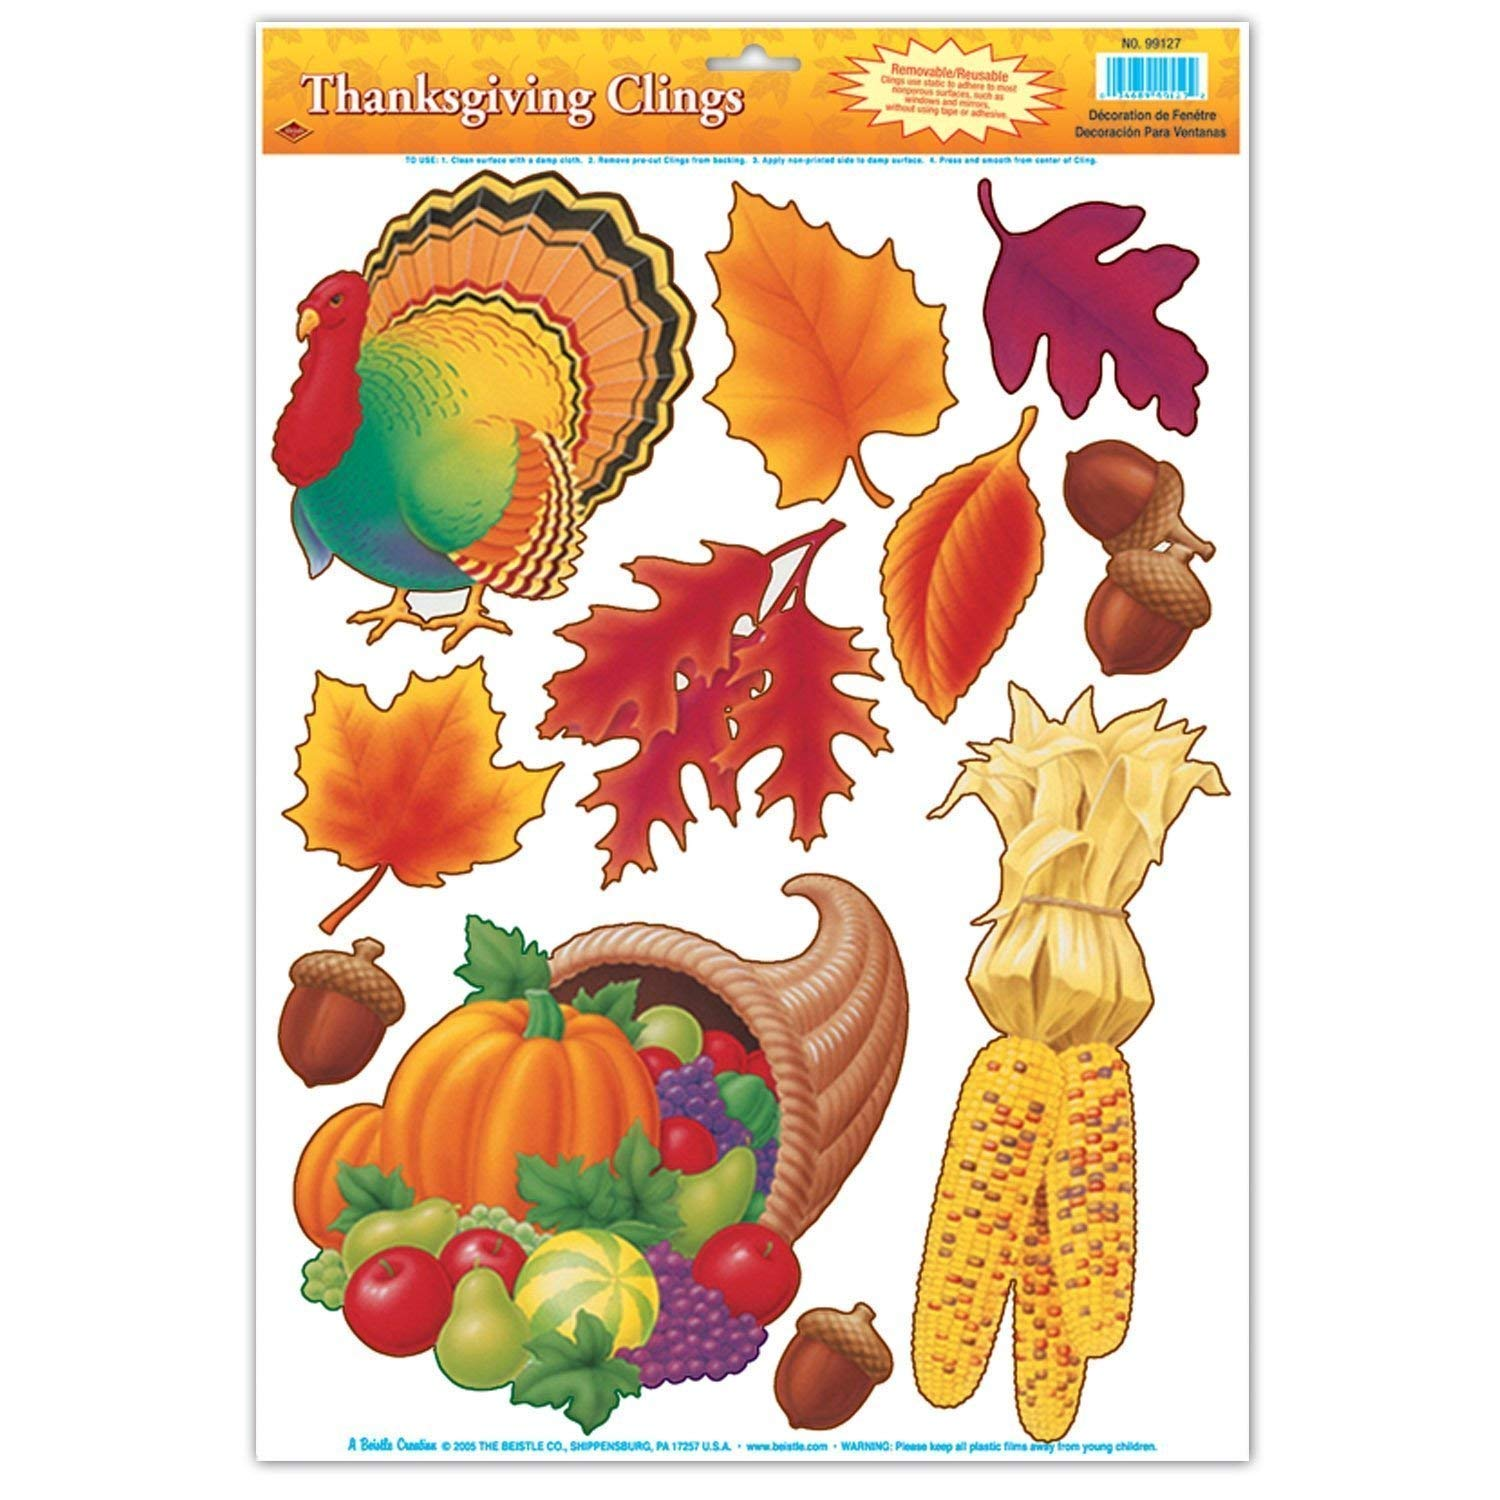 SMyFone Thanksgiving Clings 12'' x 17'' Sh (11/Sh) (1/Pkg) Pkg/12 by All we want store